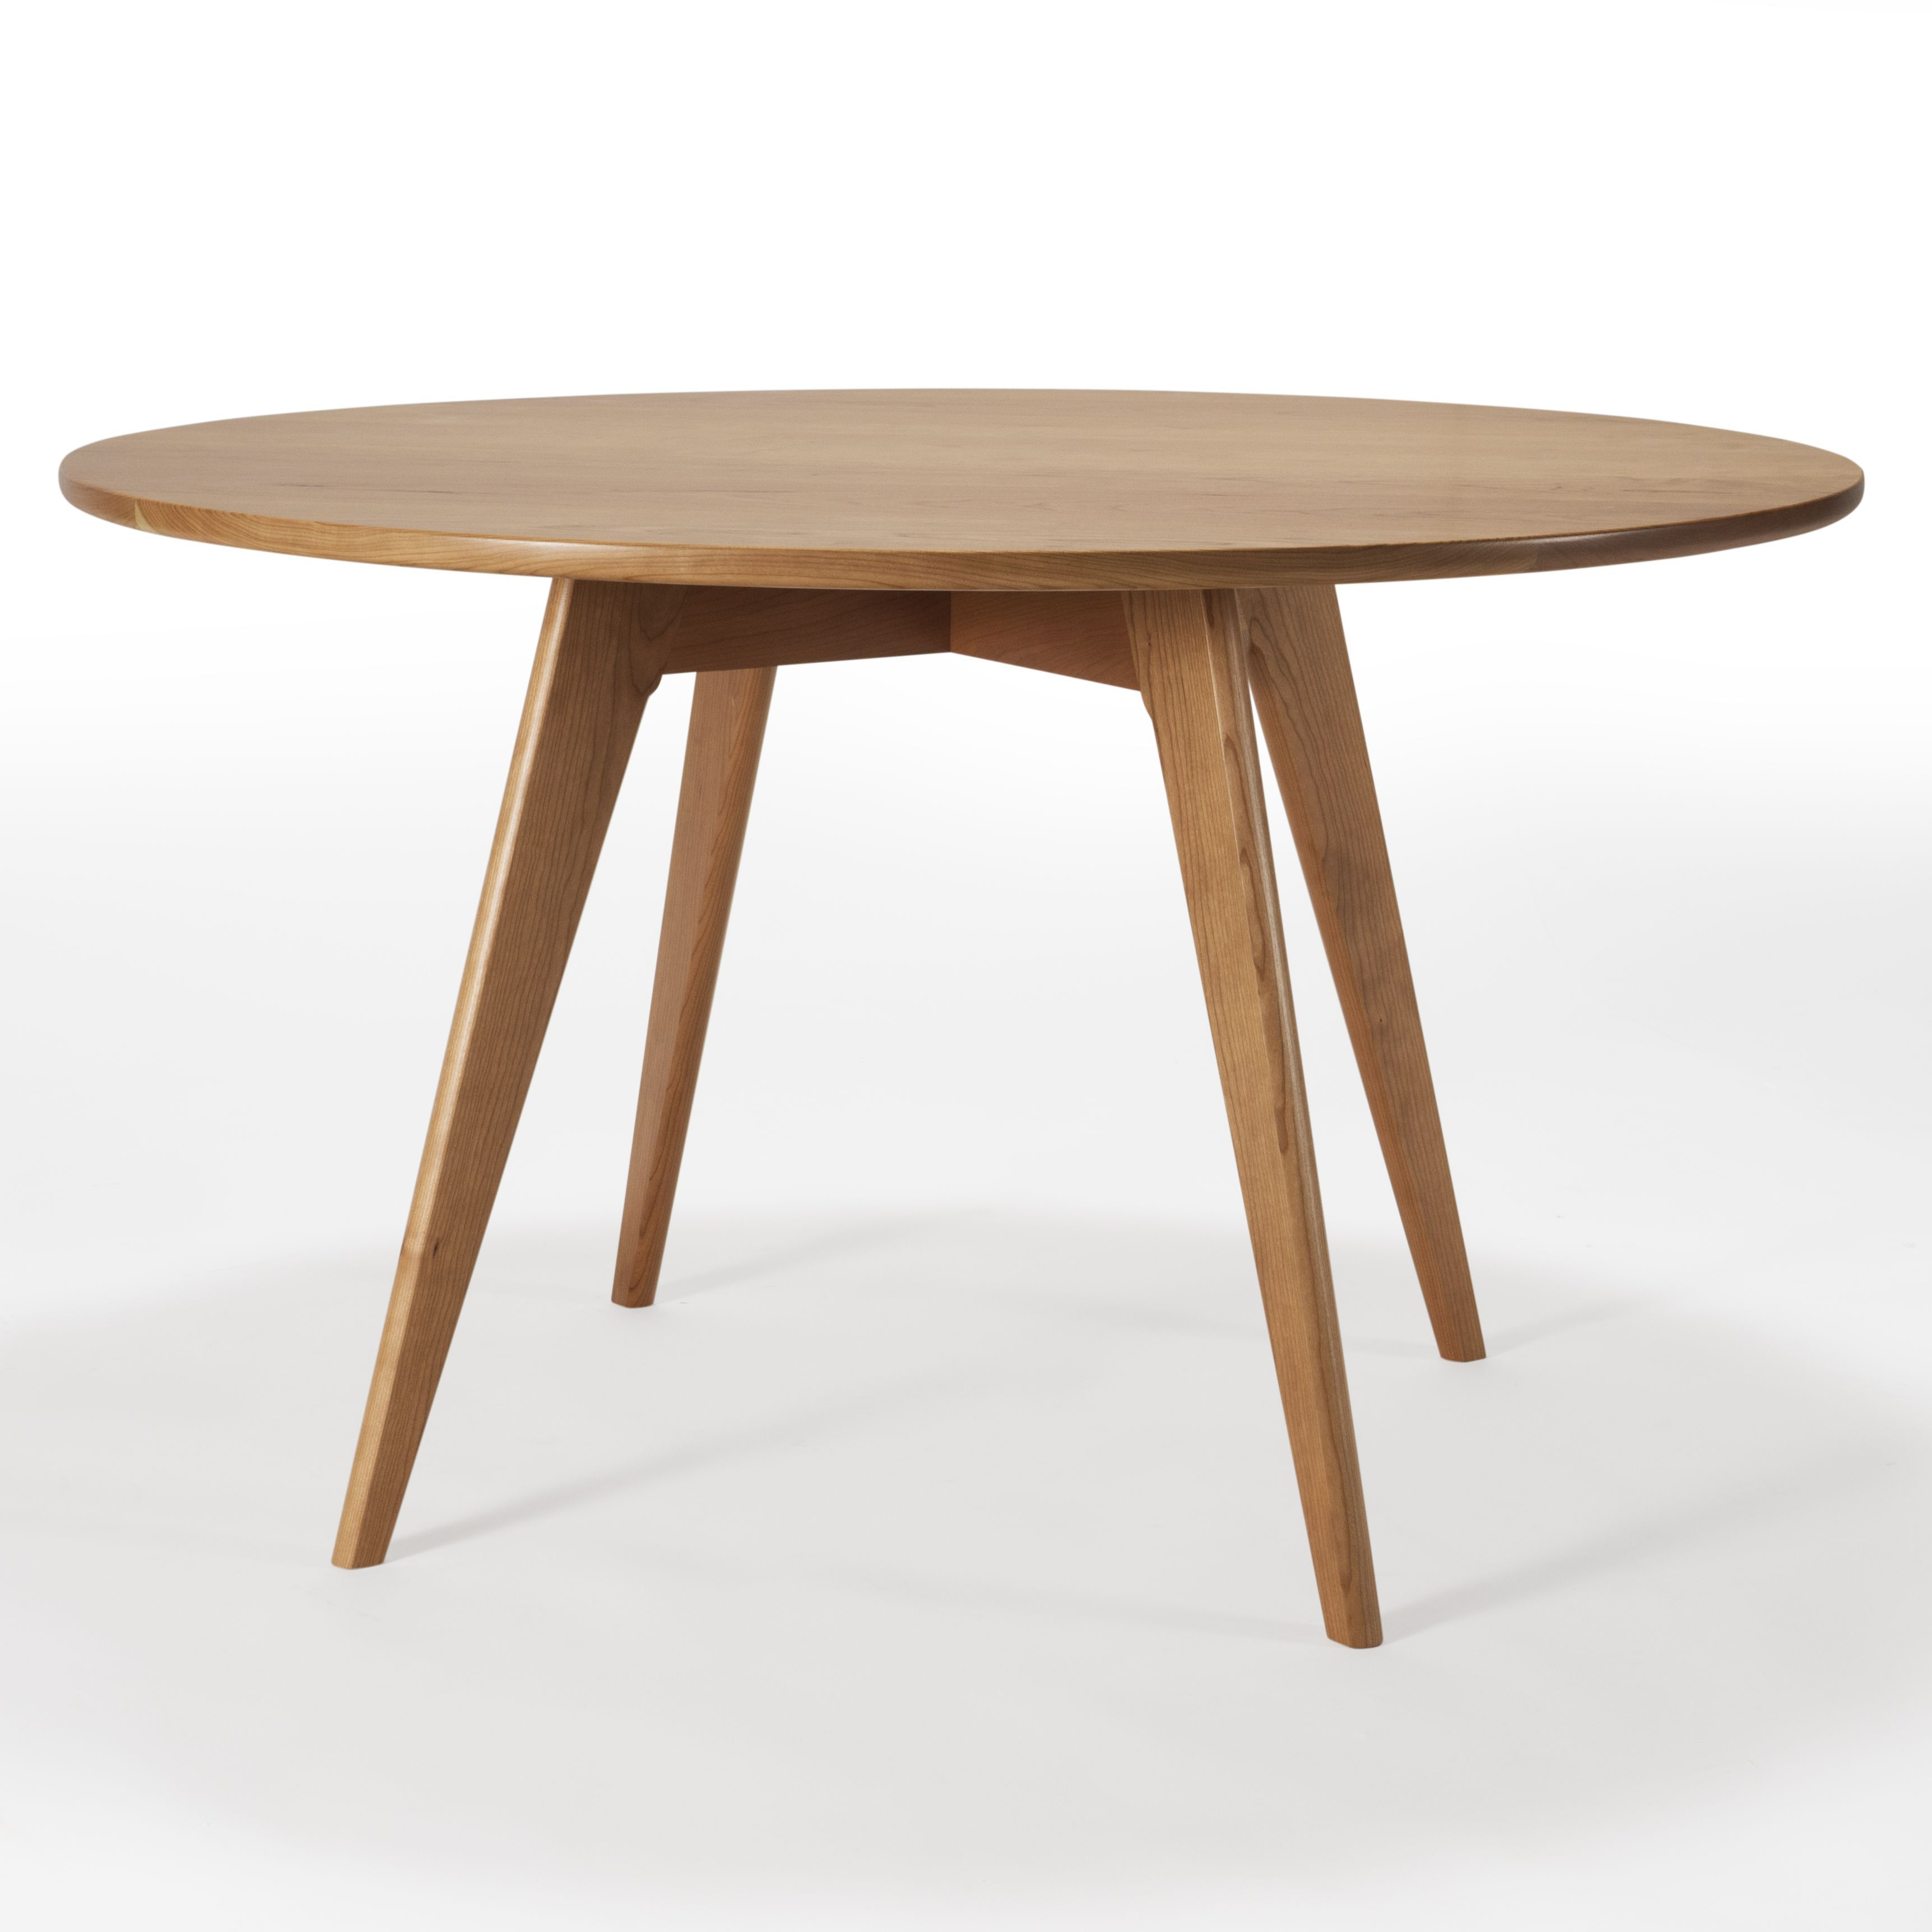 Custom Made Round Kitchen Table Mid Century Modern Dining Table Solid Cherry Woo Round Dining Table Modern Midcentury Modern Dining Table Round Kitchen Table